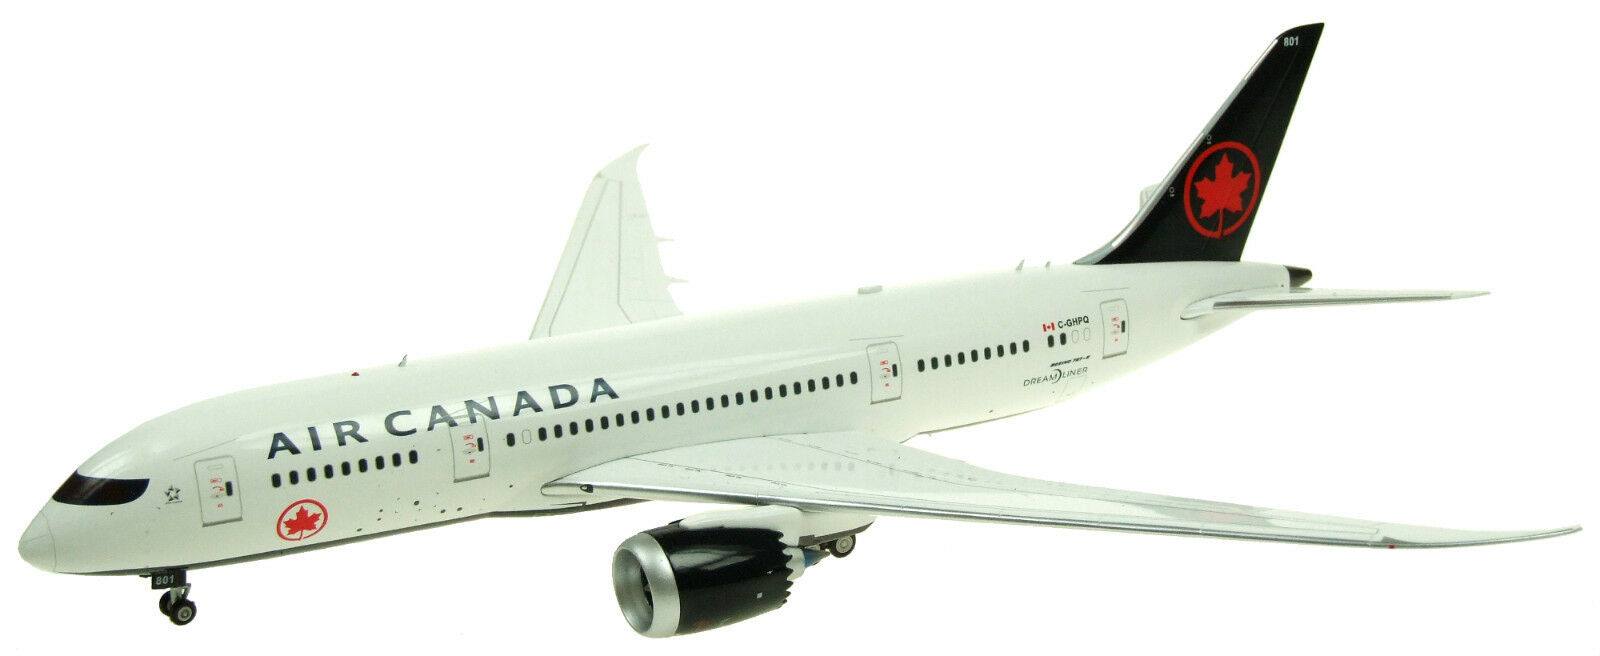 INFLIGHT 200 IF7870317 1/200 AIR CANADA BOEING 787-8 Dreamliner C-ghpq con supporto